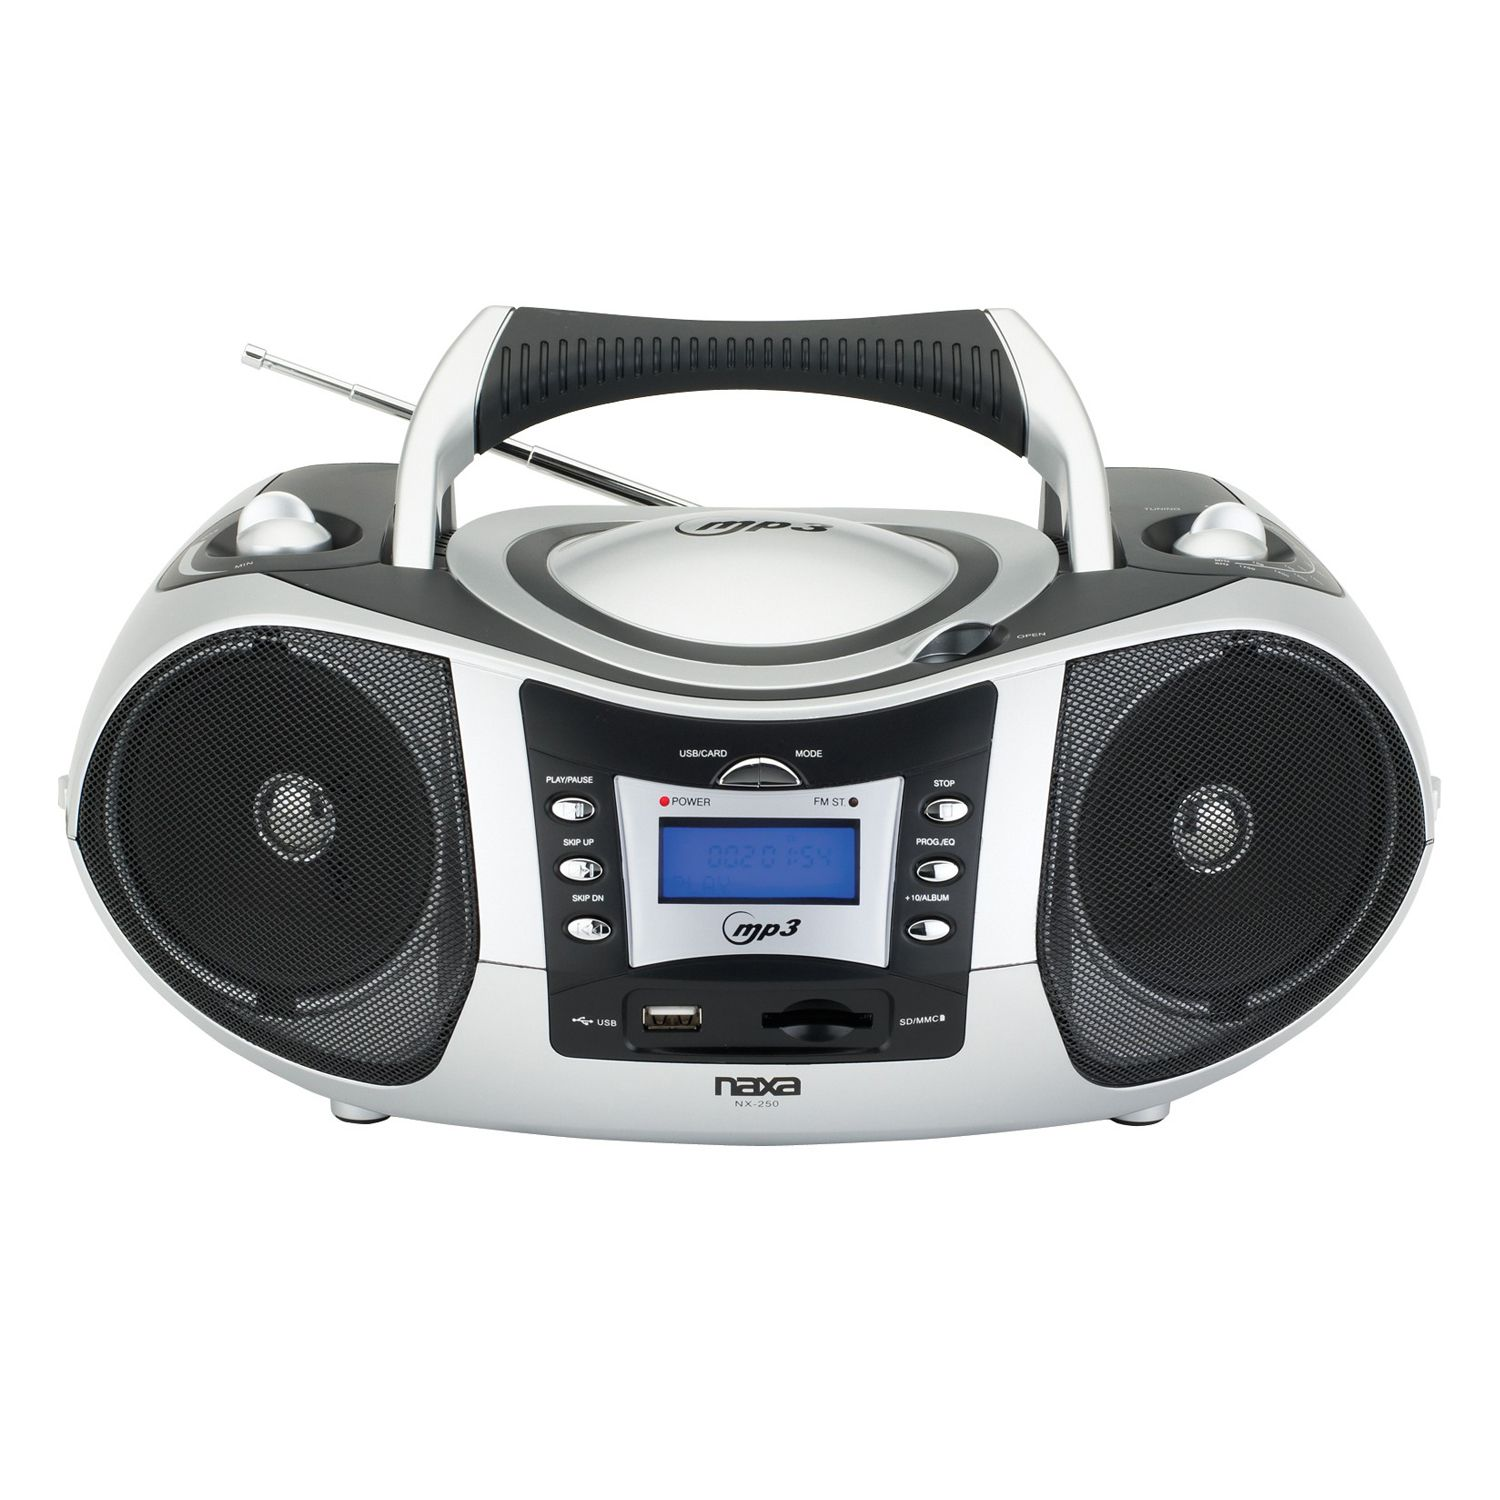 pin on cd players boomboxes. Black Bedroom Furniture Sets. Home Design Ideas